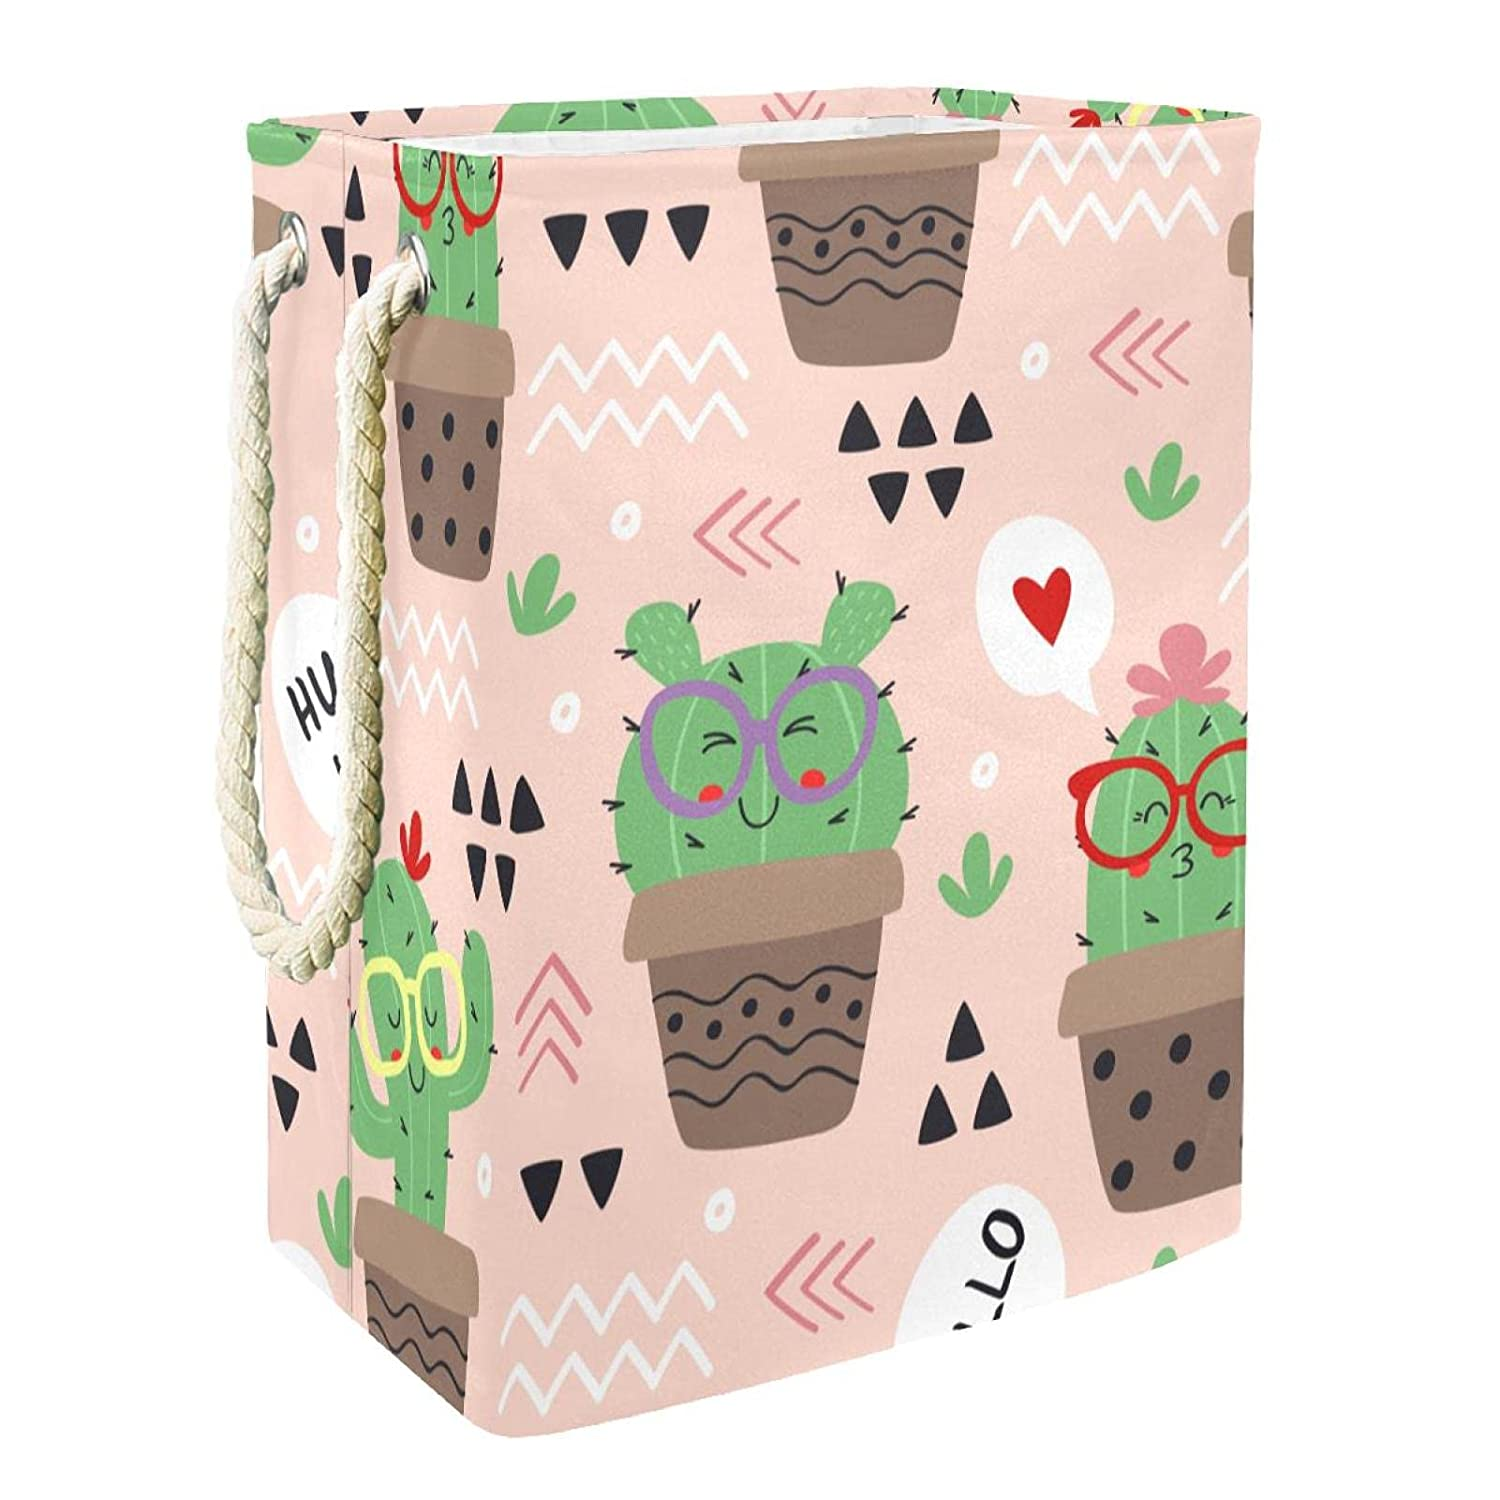 Factory outlet Kids Storage Basket Cute Cactus Bin Co and Toy Opening large release sale Accessory